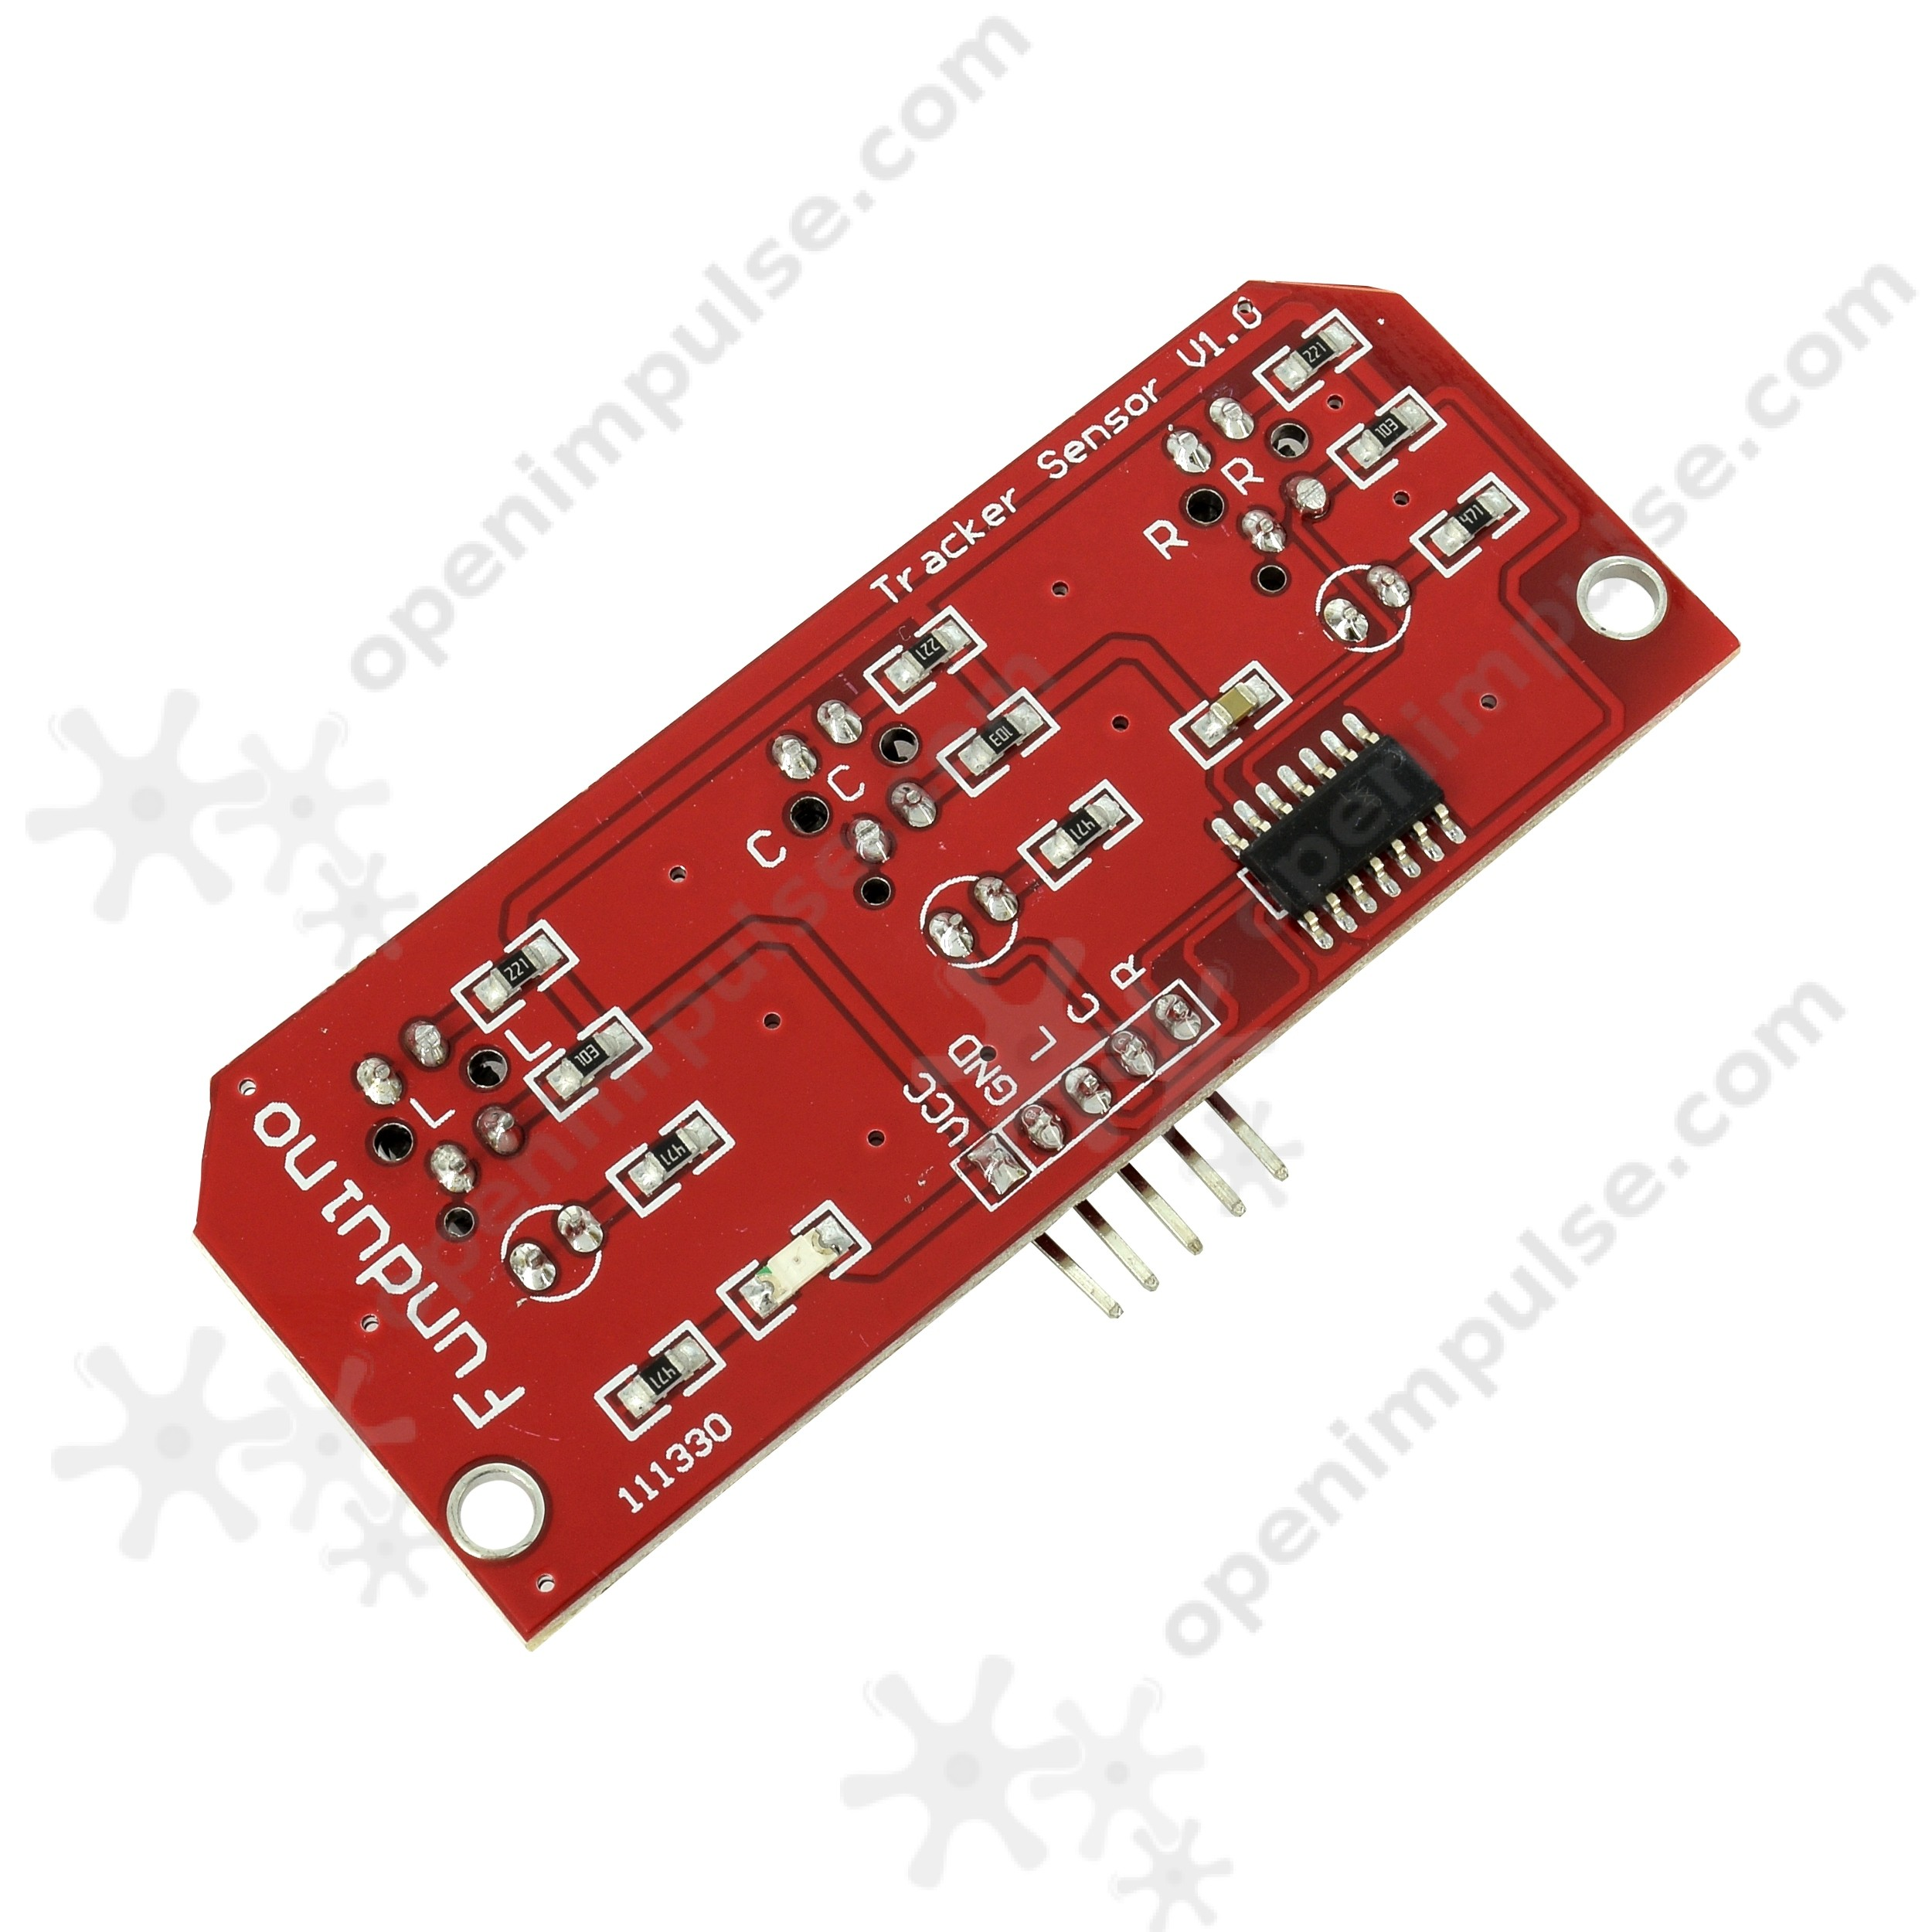 Line Sensor Array With 3 Sensors Open Impulseopen Impulse The We Will Use In This Circuit Is A Tcs3200 Color 1 Bar Commands Your Robot Project To Follow